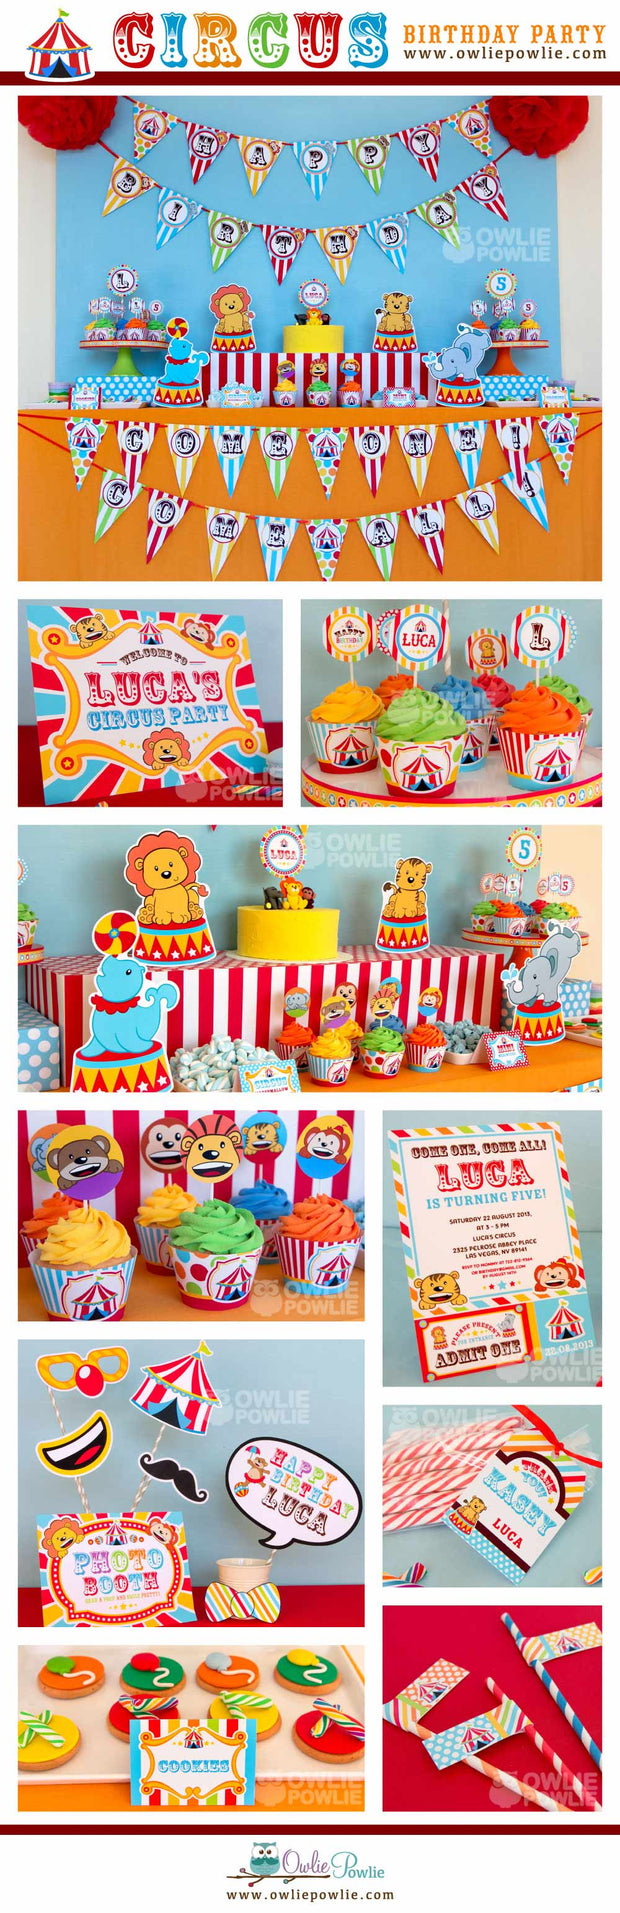 Vintage Circus Birthday Party Package